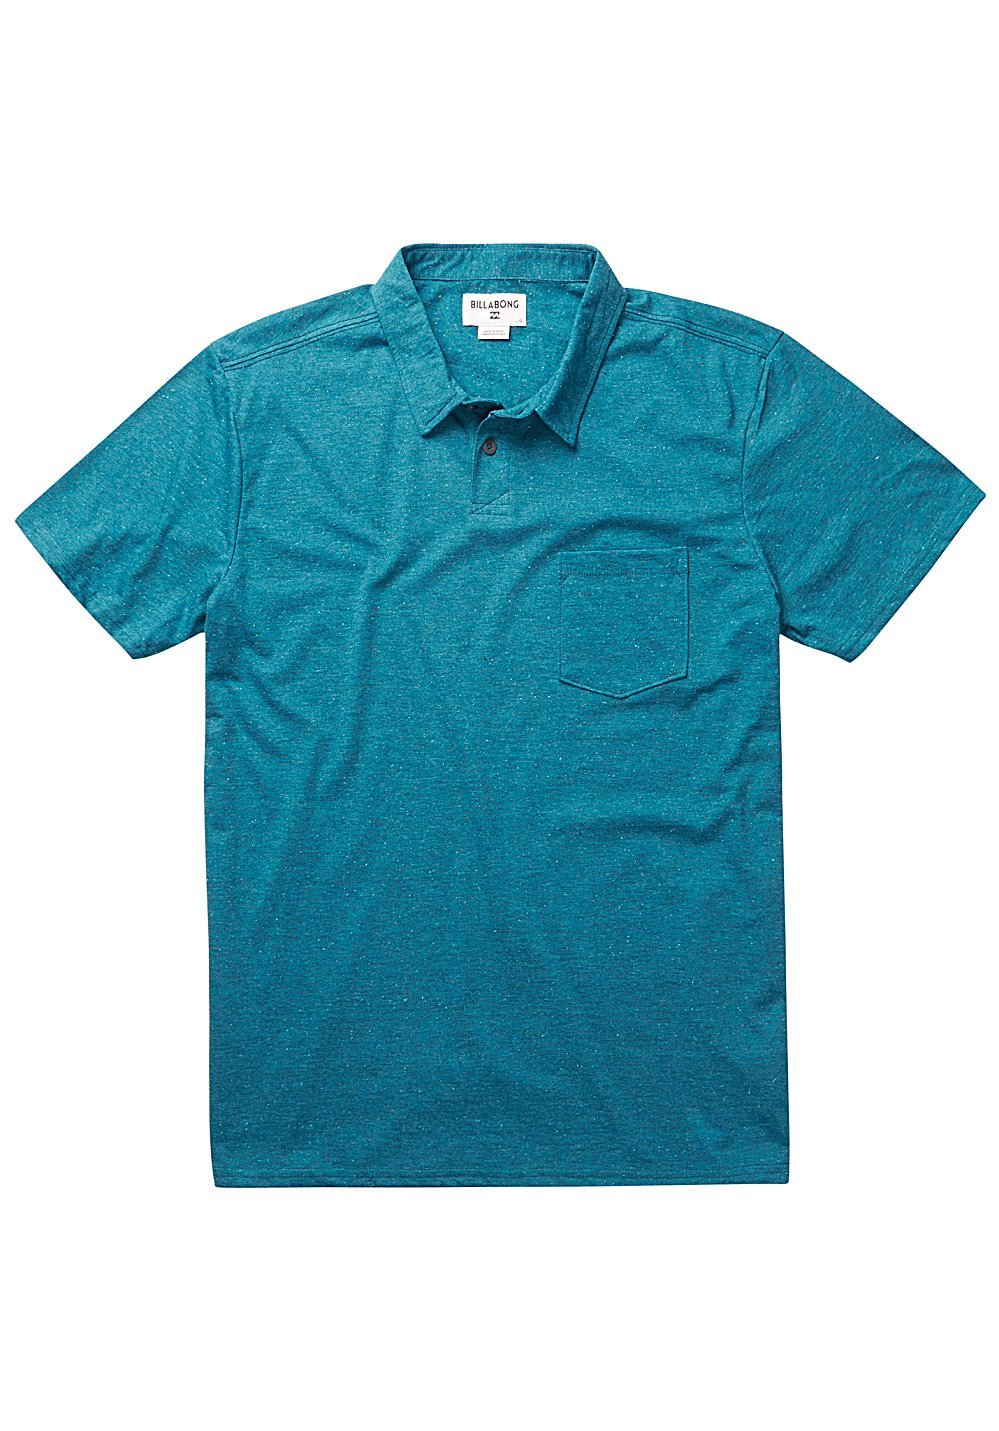 Billabong Polo pour homme standard issue XL Marine Heather l49ut